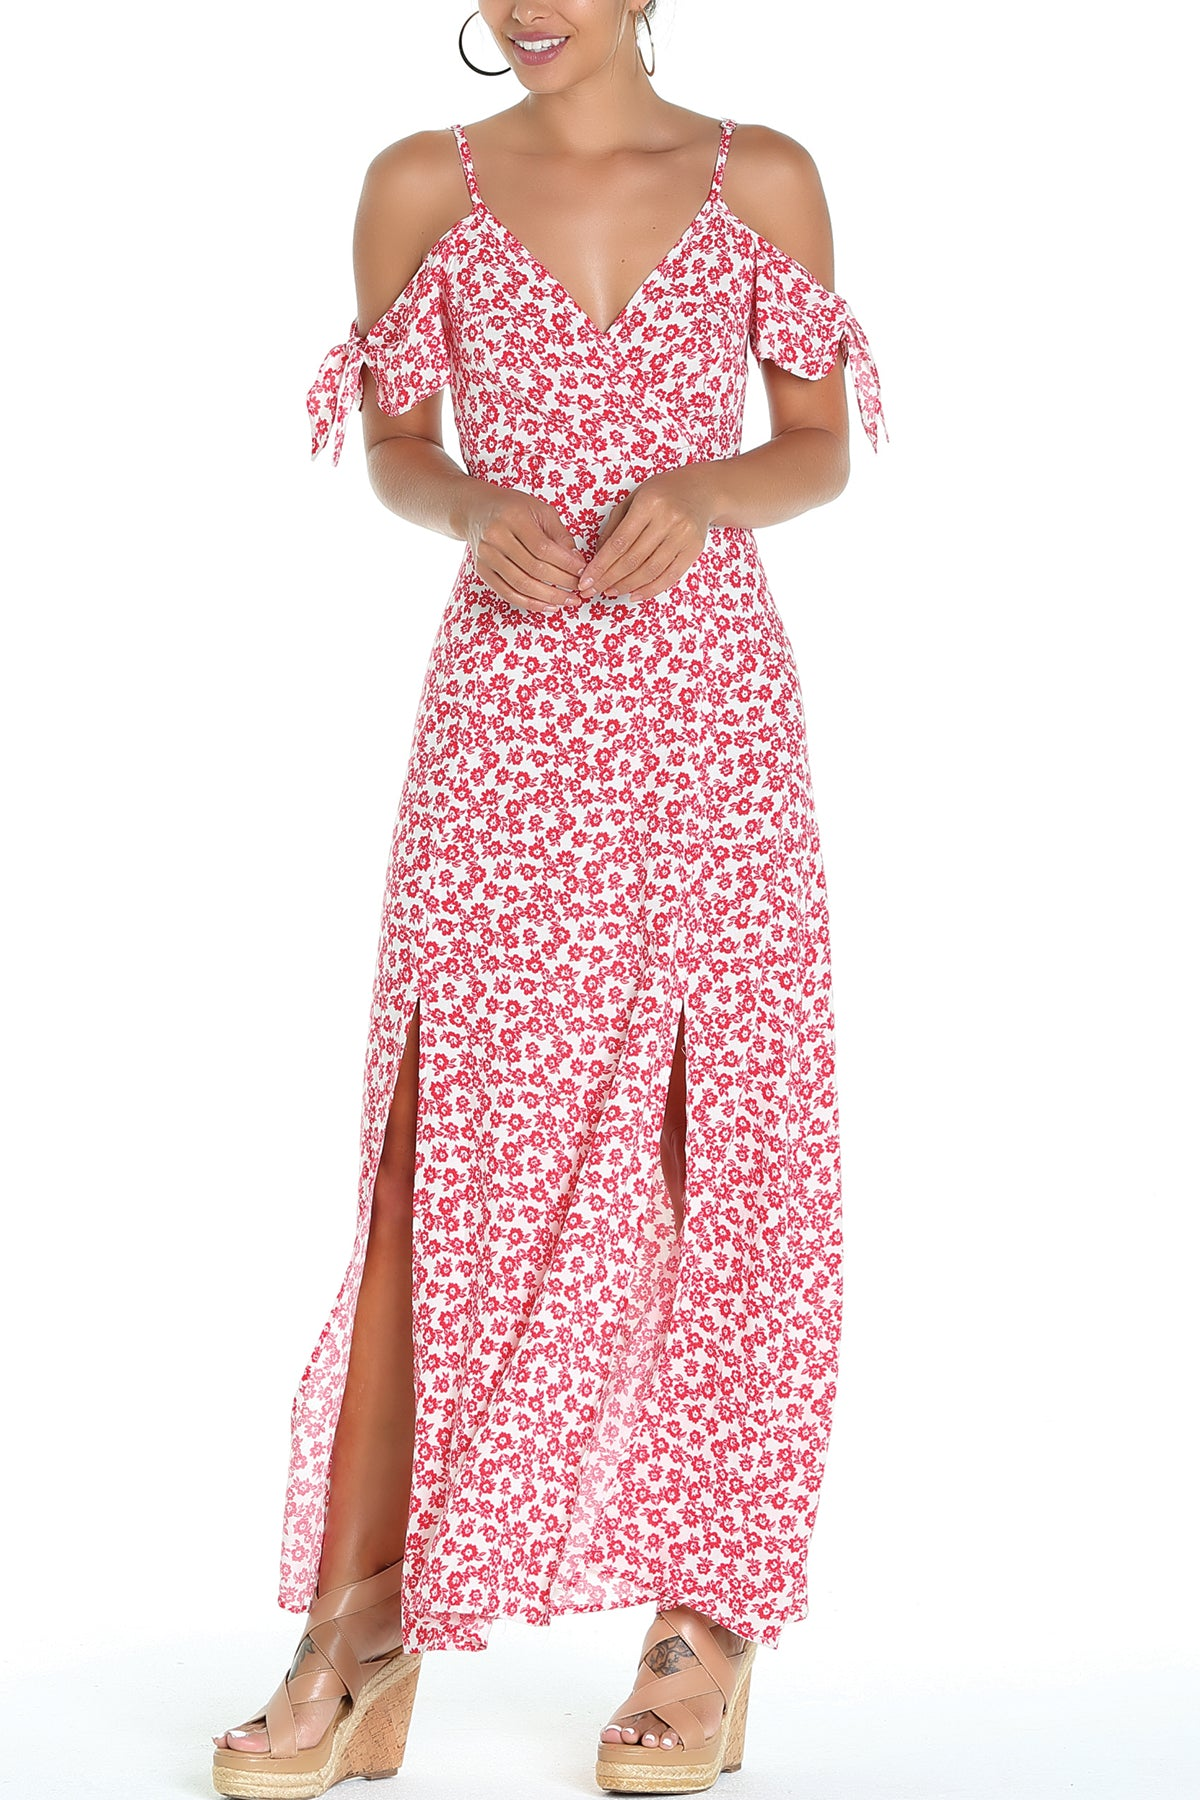 LAYLA MAXI DRESS - NEW NEW